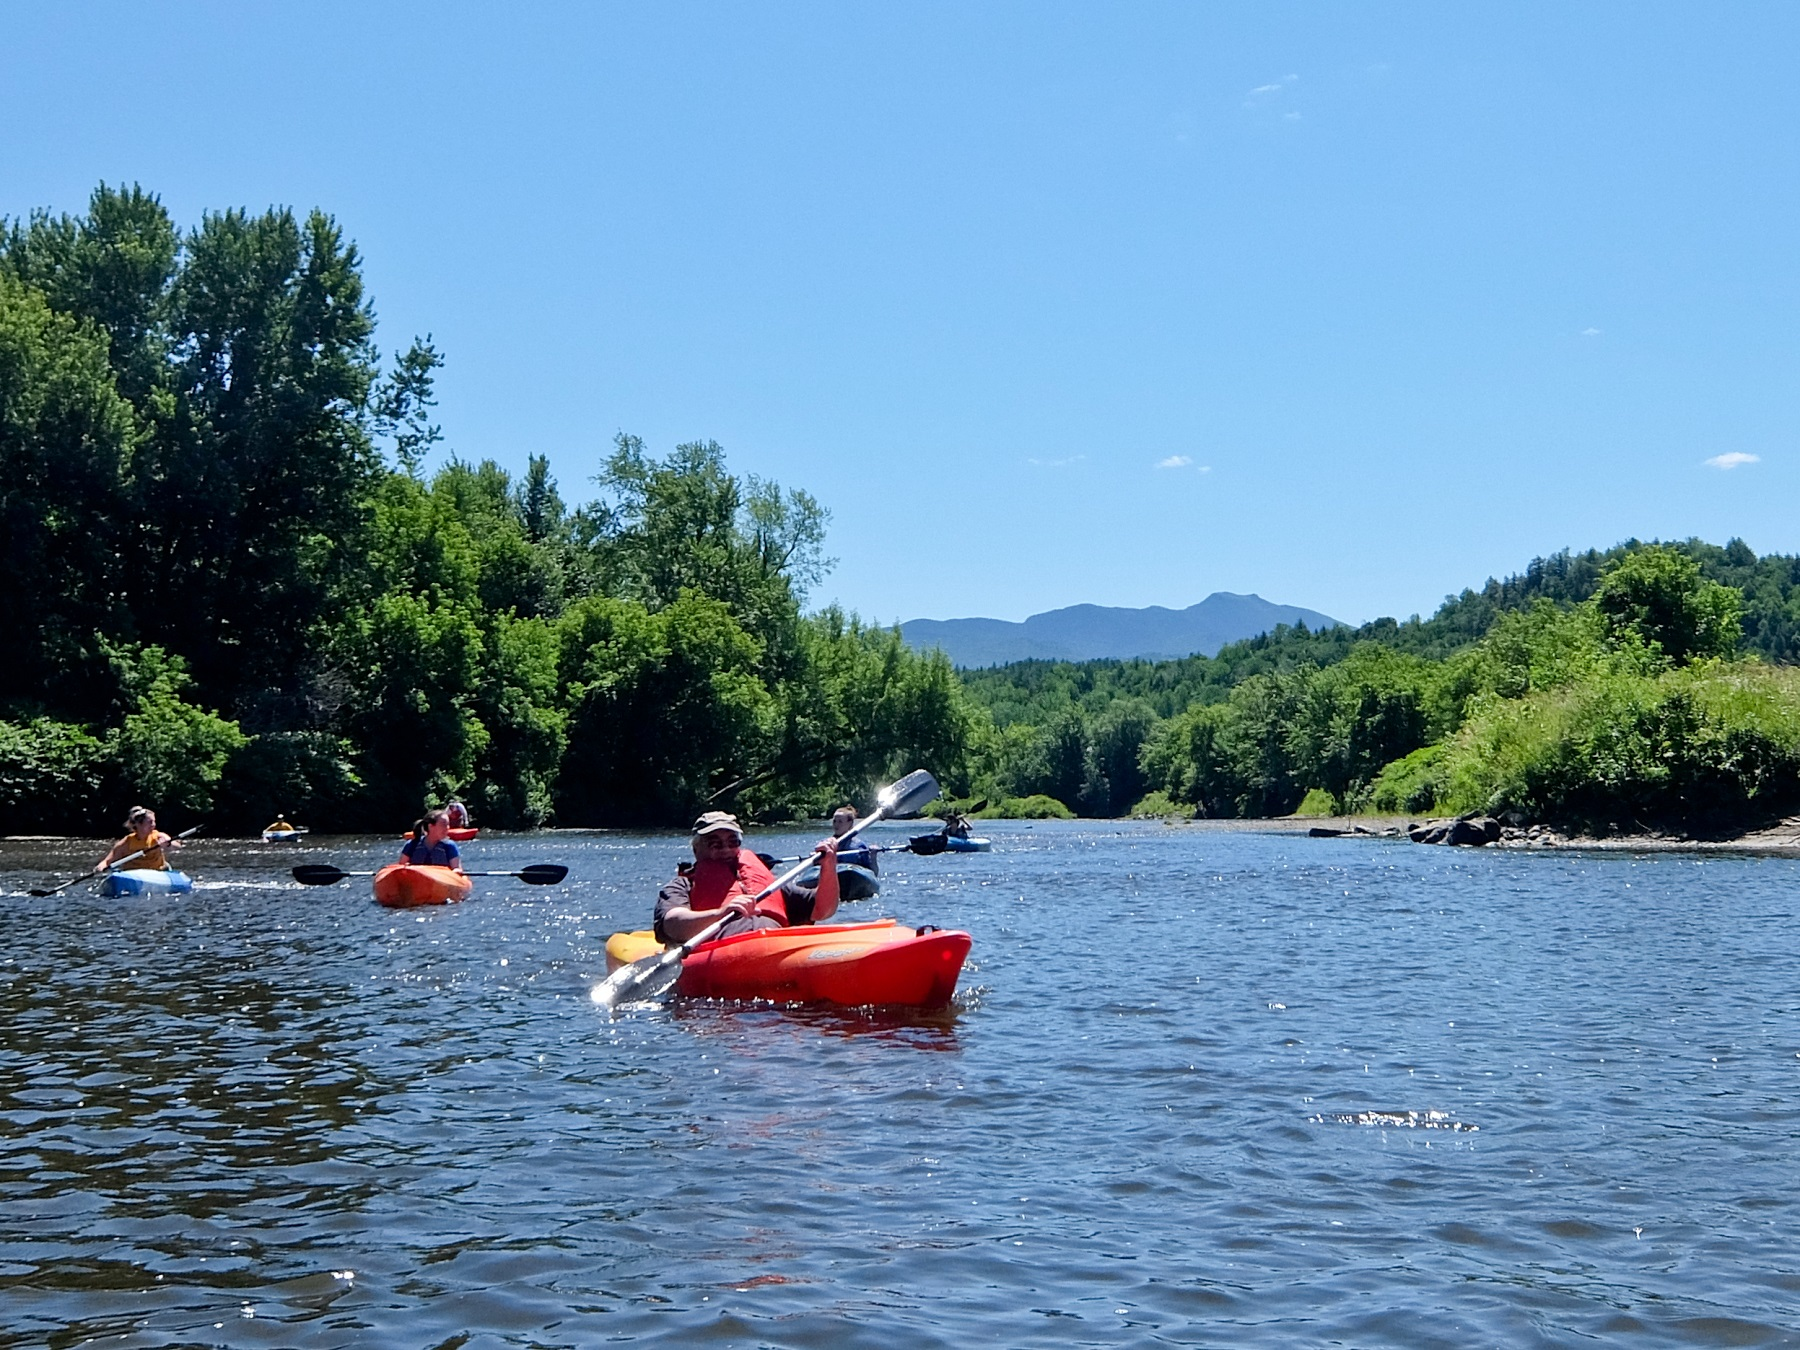 Adventures in Vermont: How to plan an active holiday in the Green Mountain State